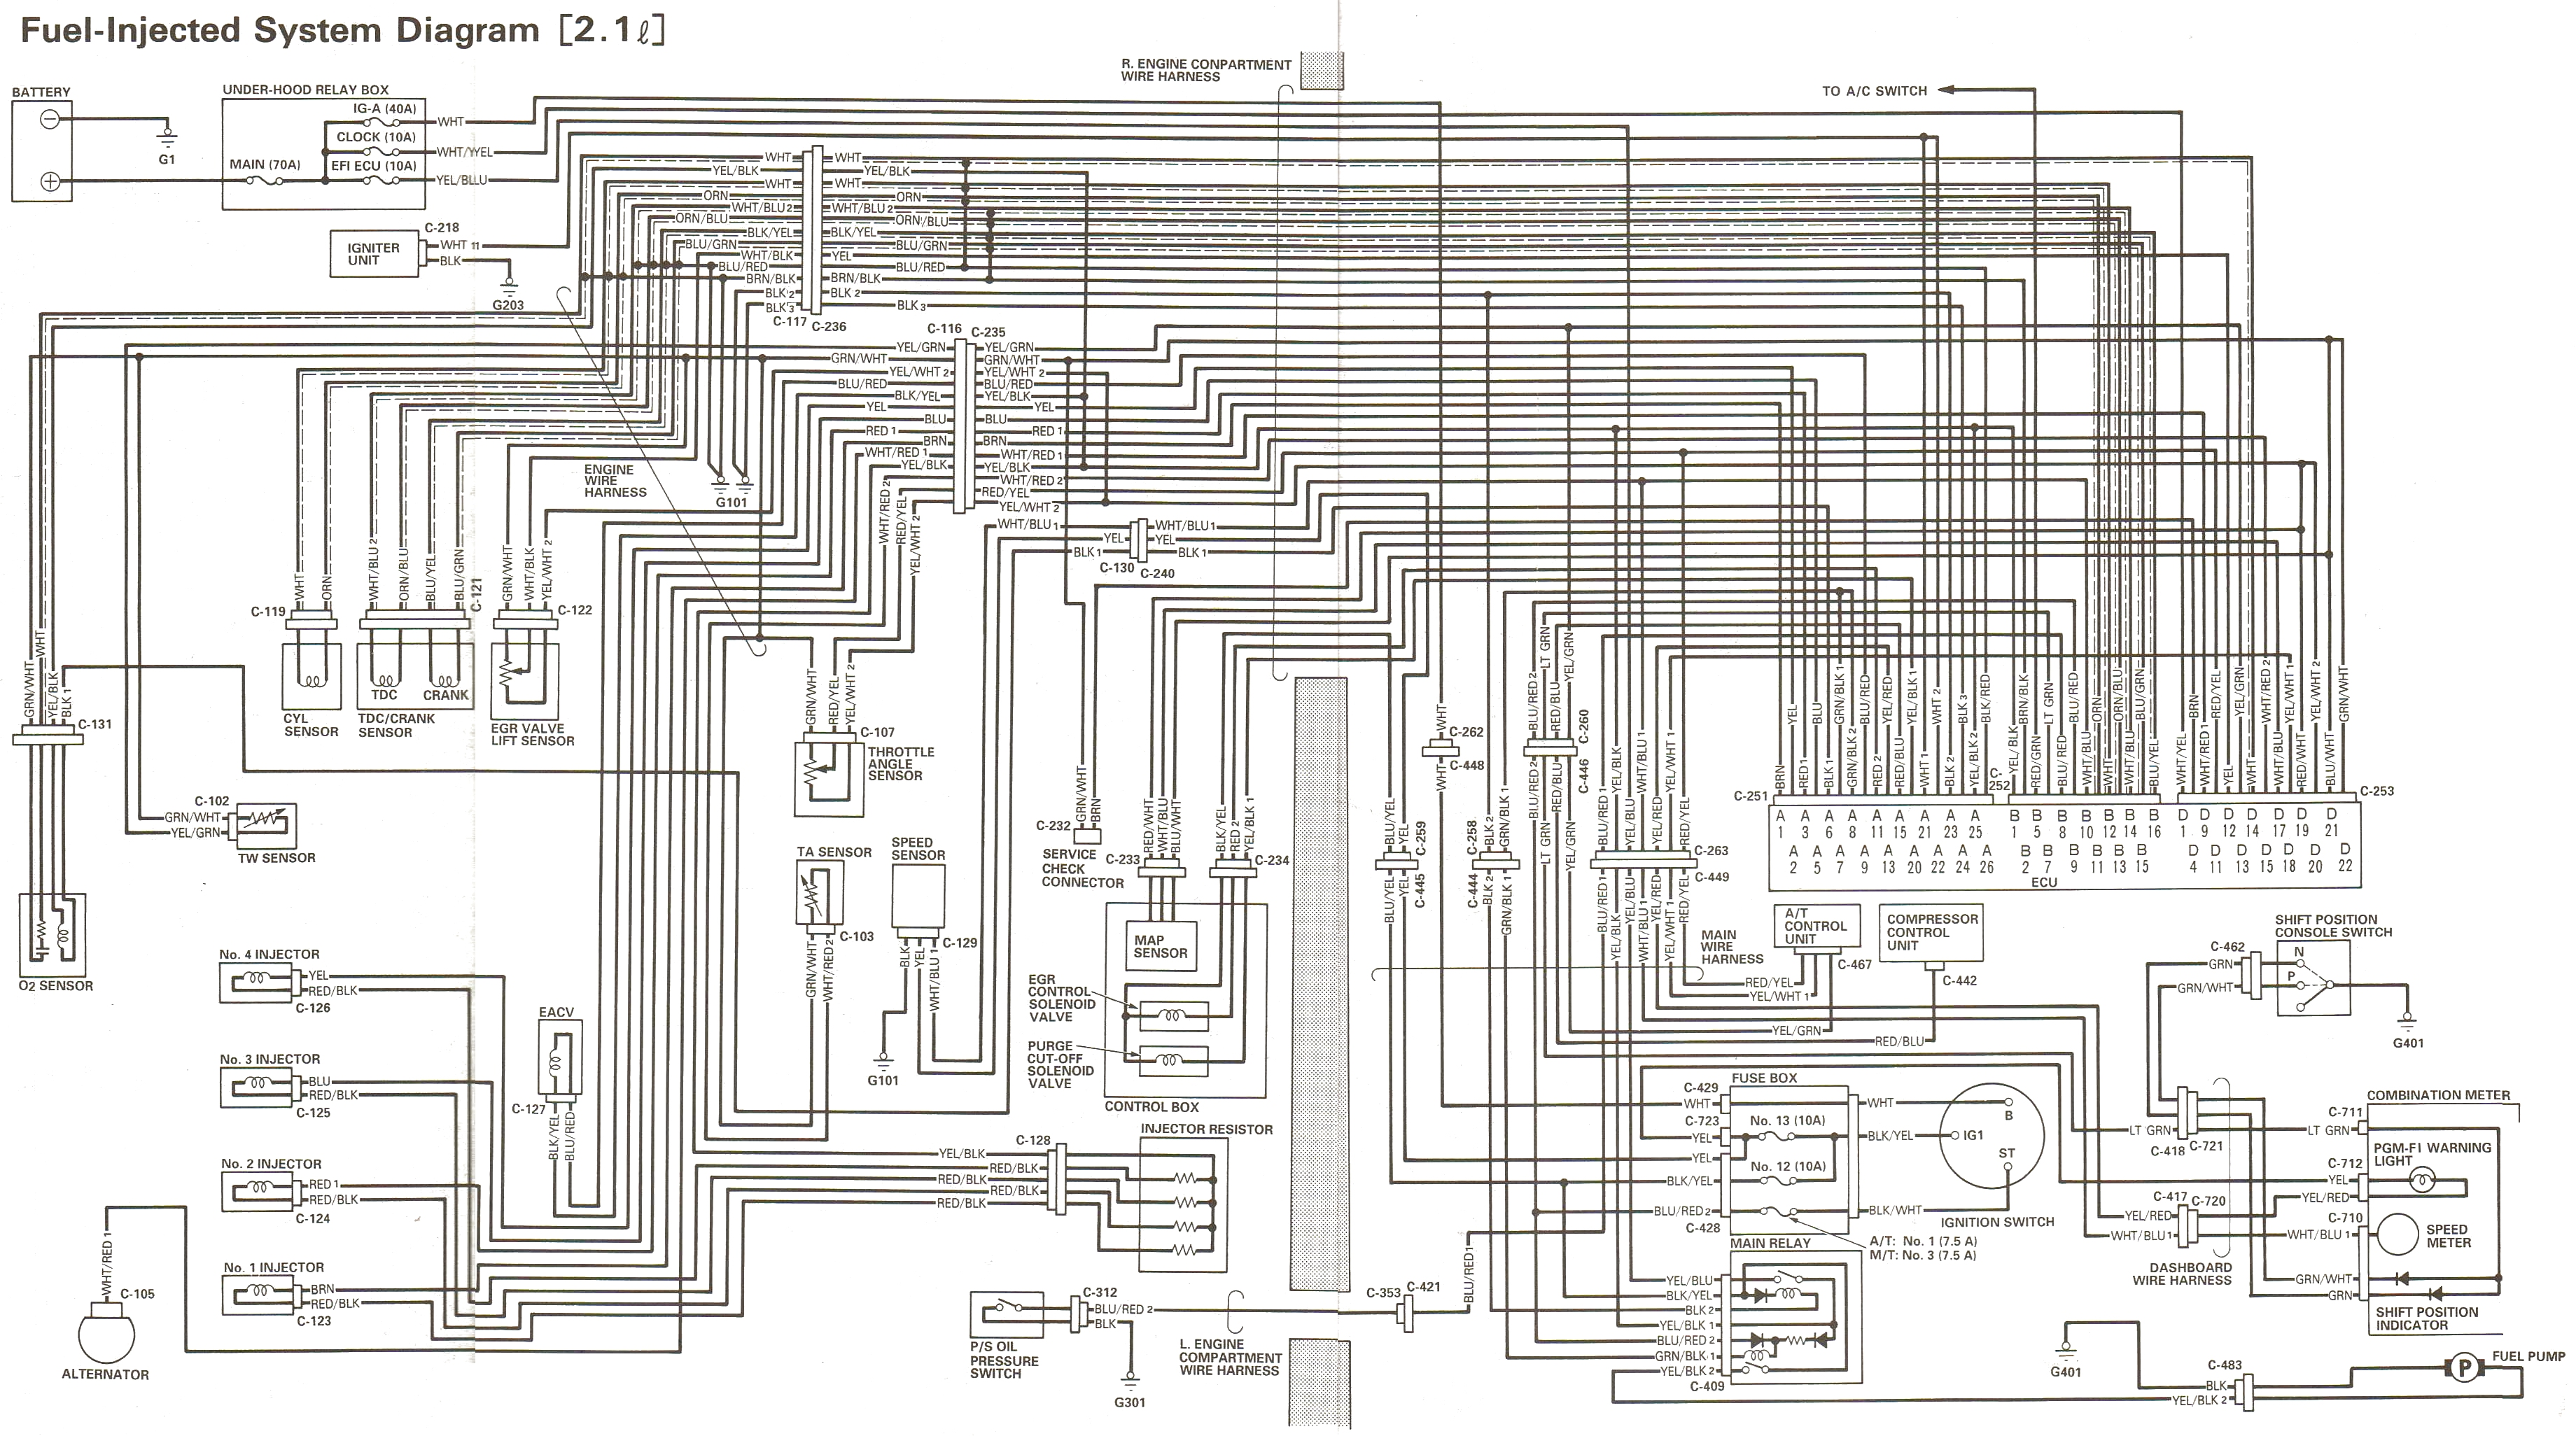 fuelinjectionsystemdiagram2point1 90 91 wiring diagrams bbb wiring diagrams at suagrazia.org